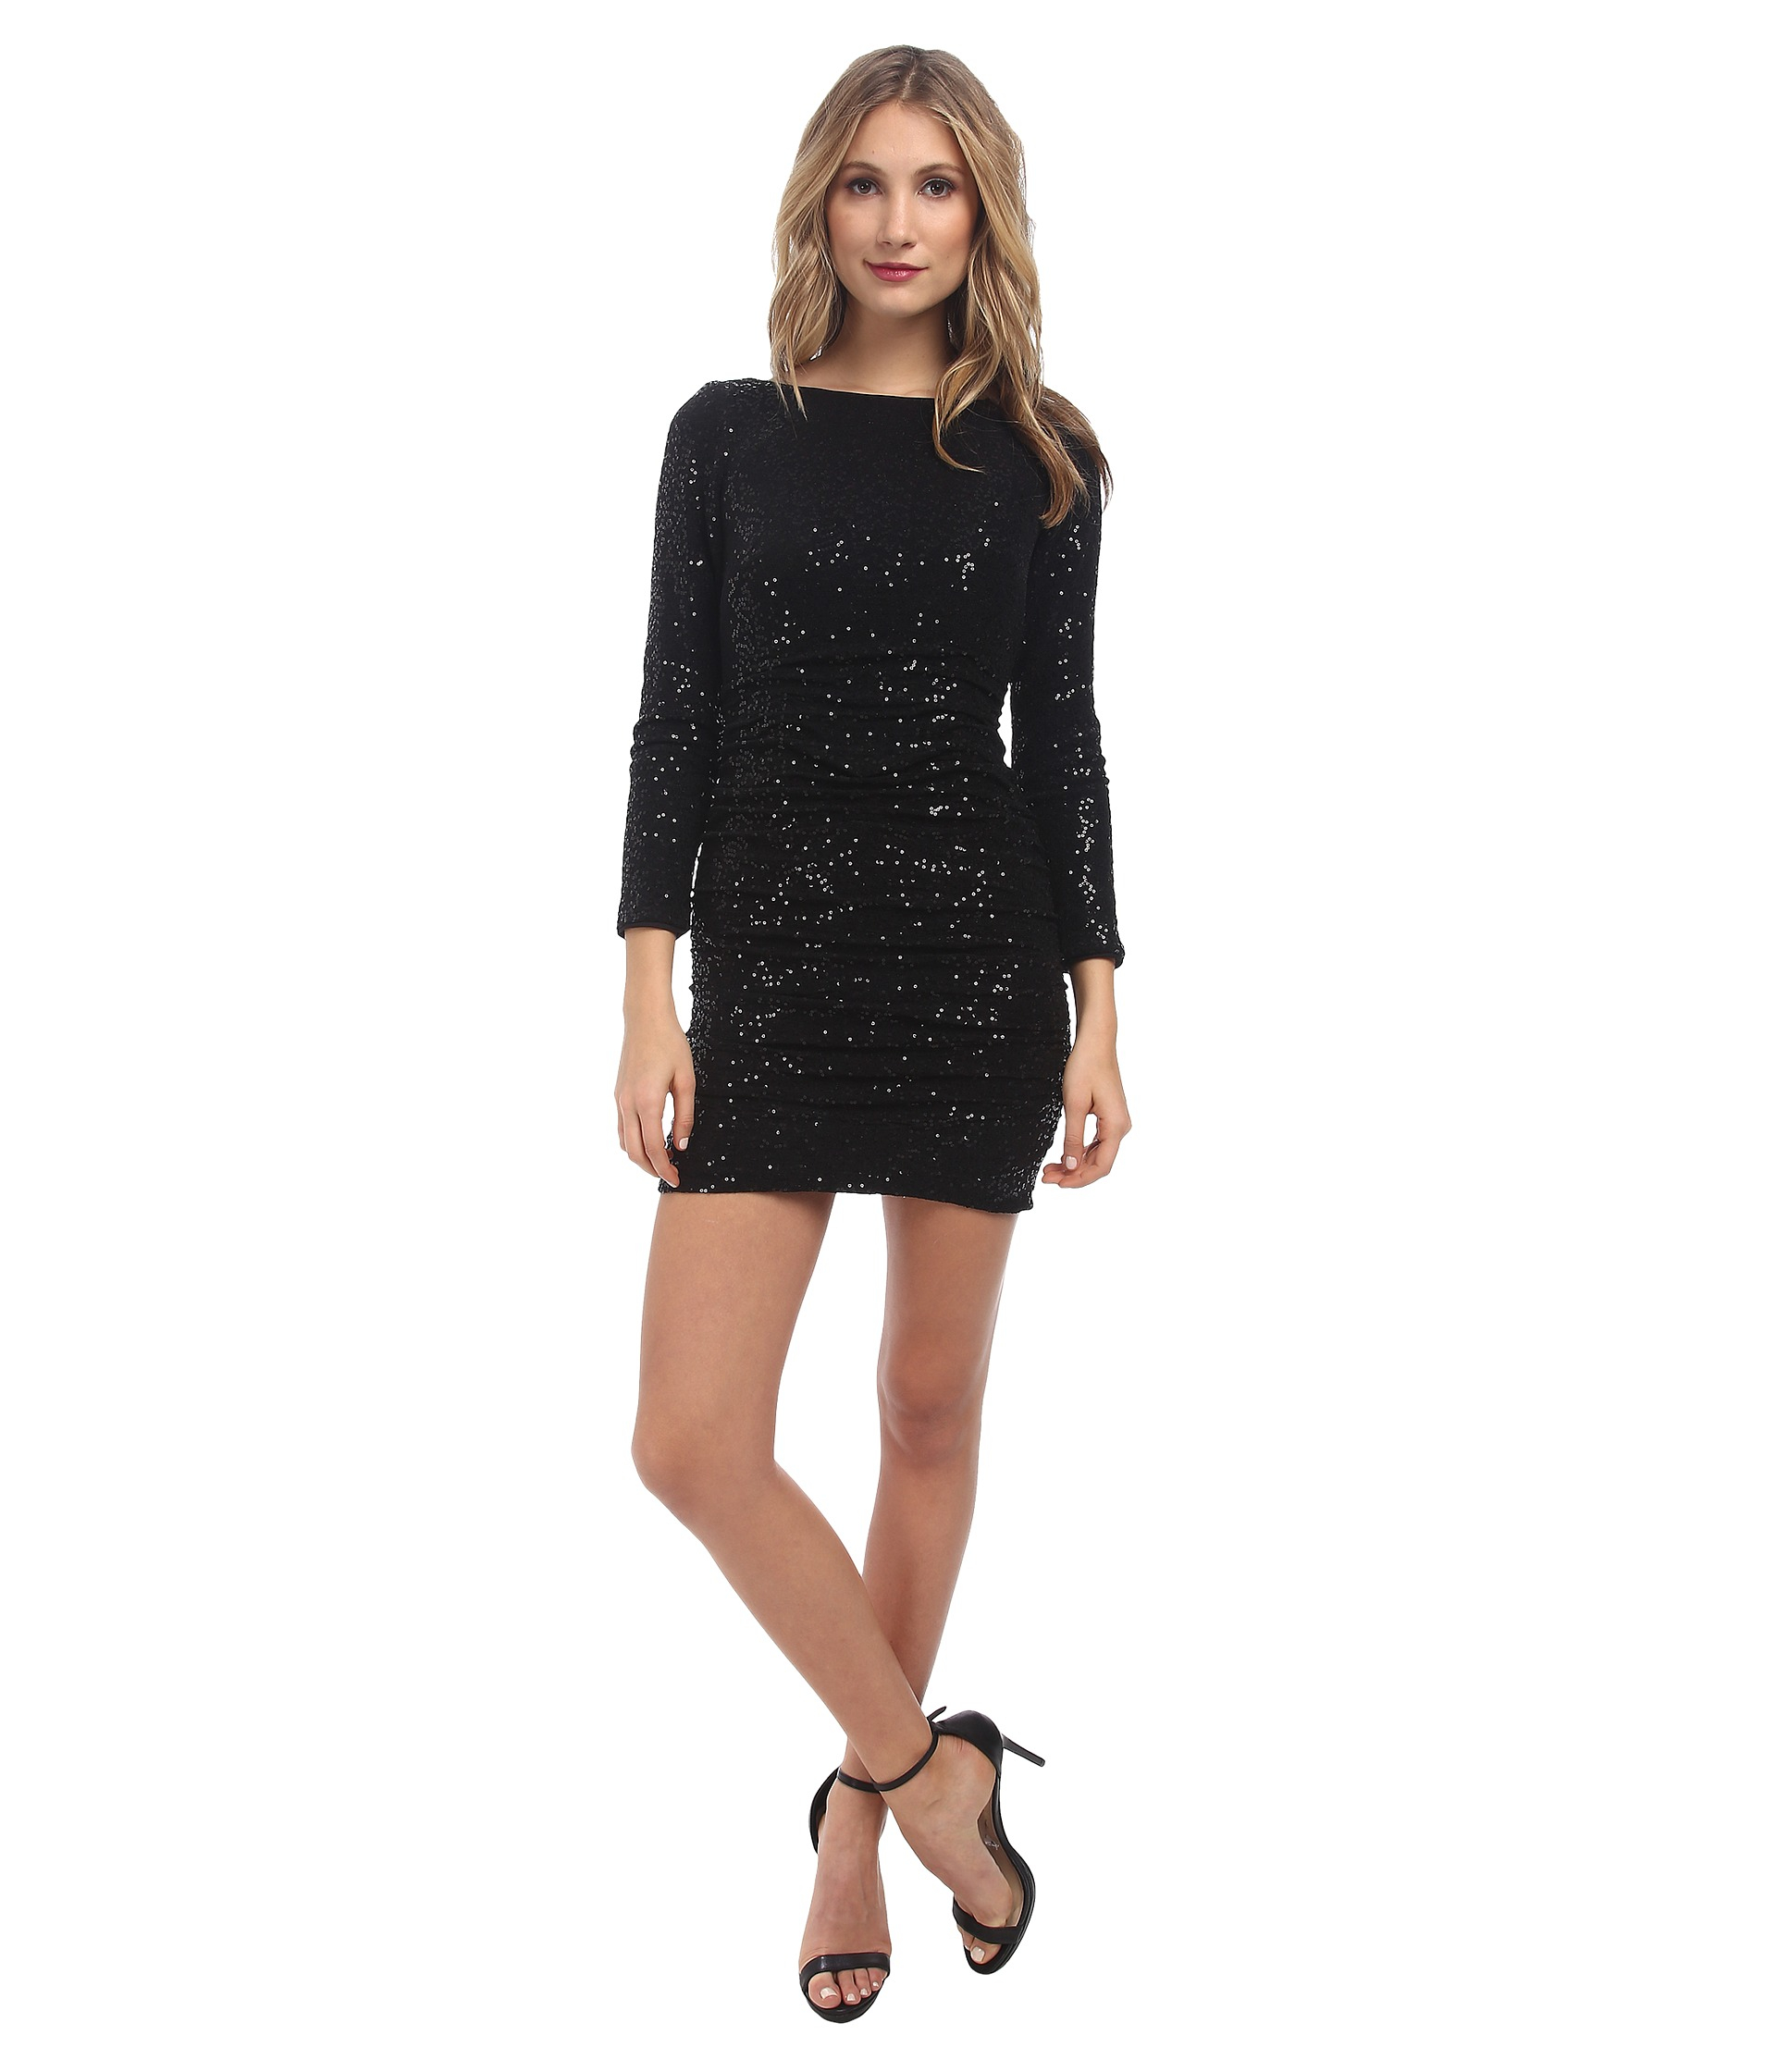 c4972851028 Cocktail Dress Long Sleeve Sequin - Gomes Weine AG